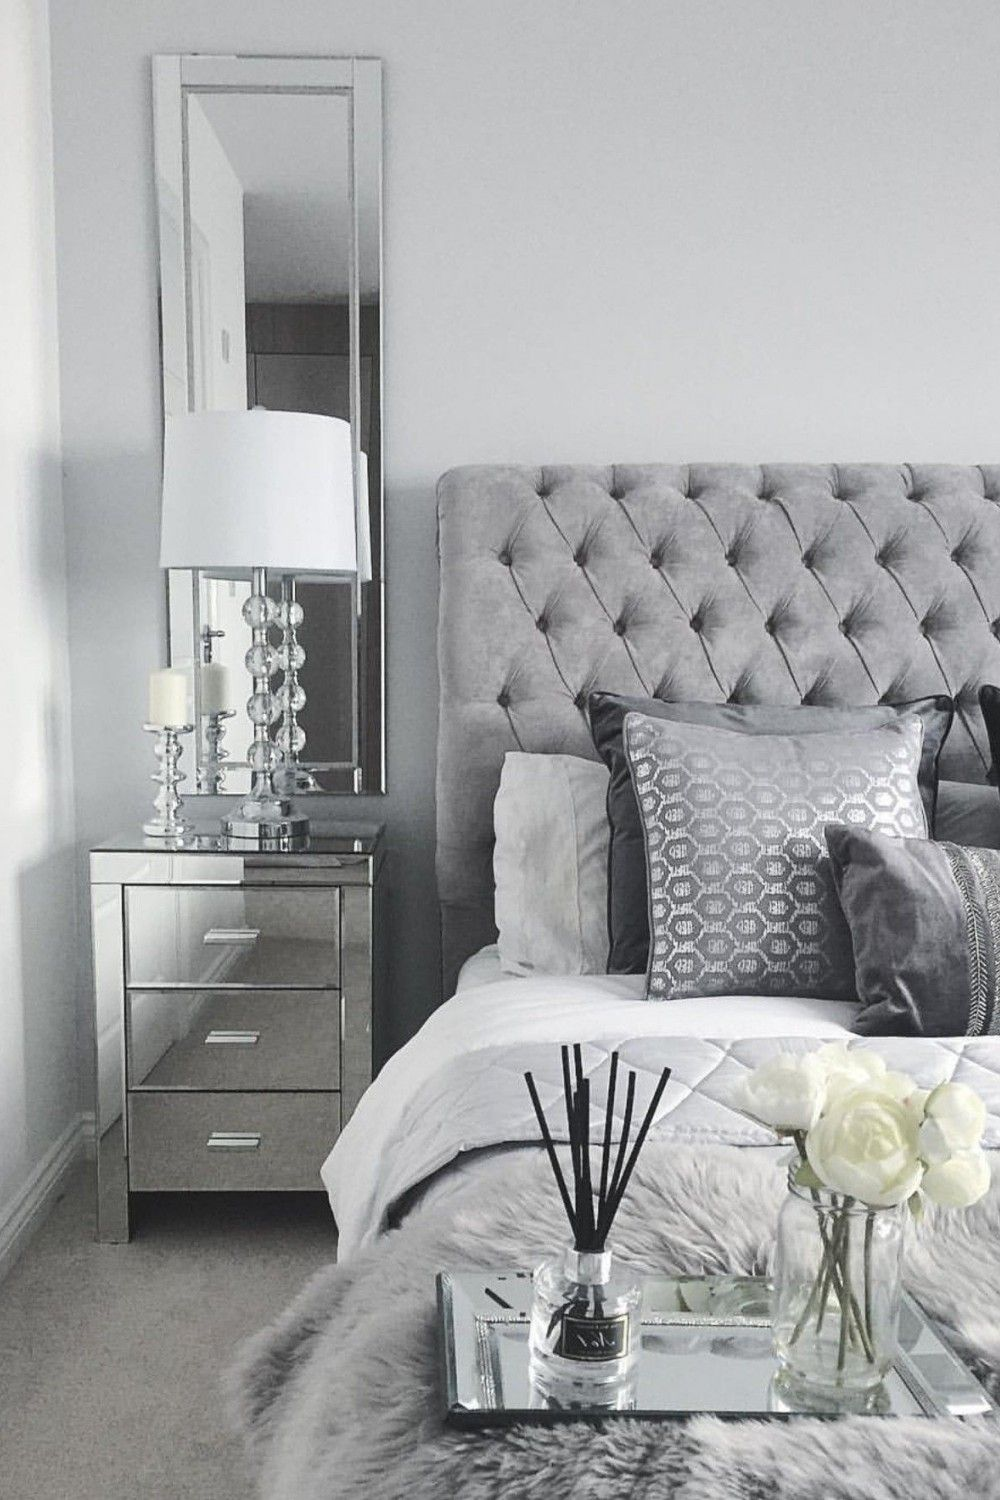 Charteris Show Home What A Beautiful Bedroom Bedroom Decor Master For Couples Master Bedrooms Decor Bedroom Interior